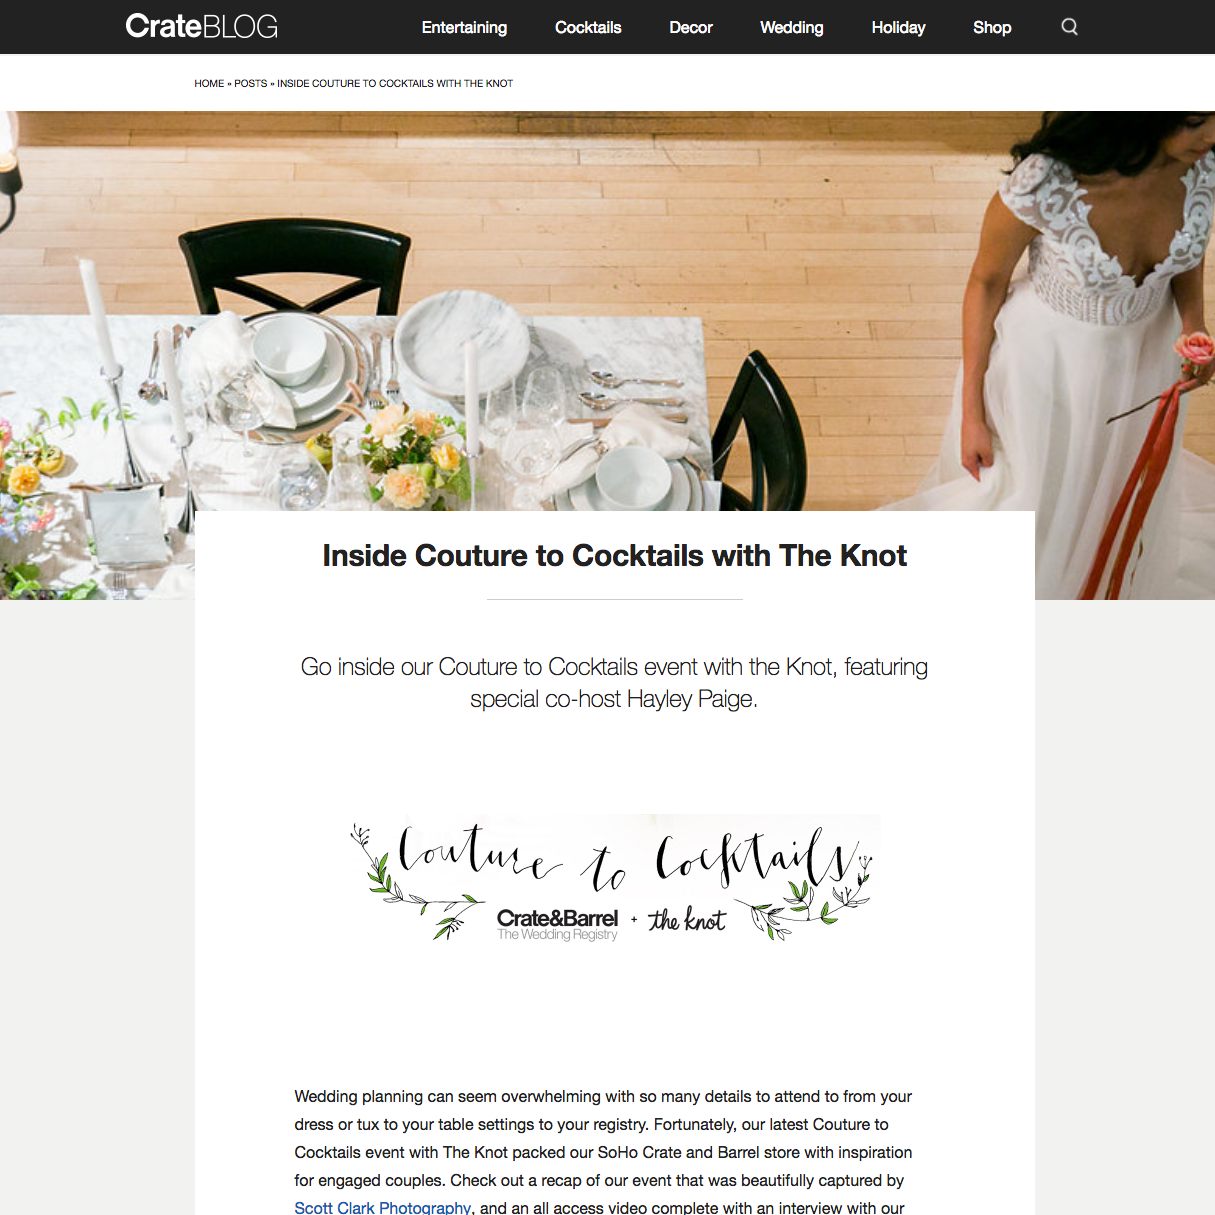 best event planner jove meyer planned a wedding event with crate and barrel